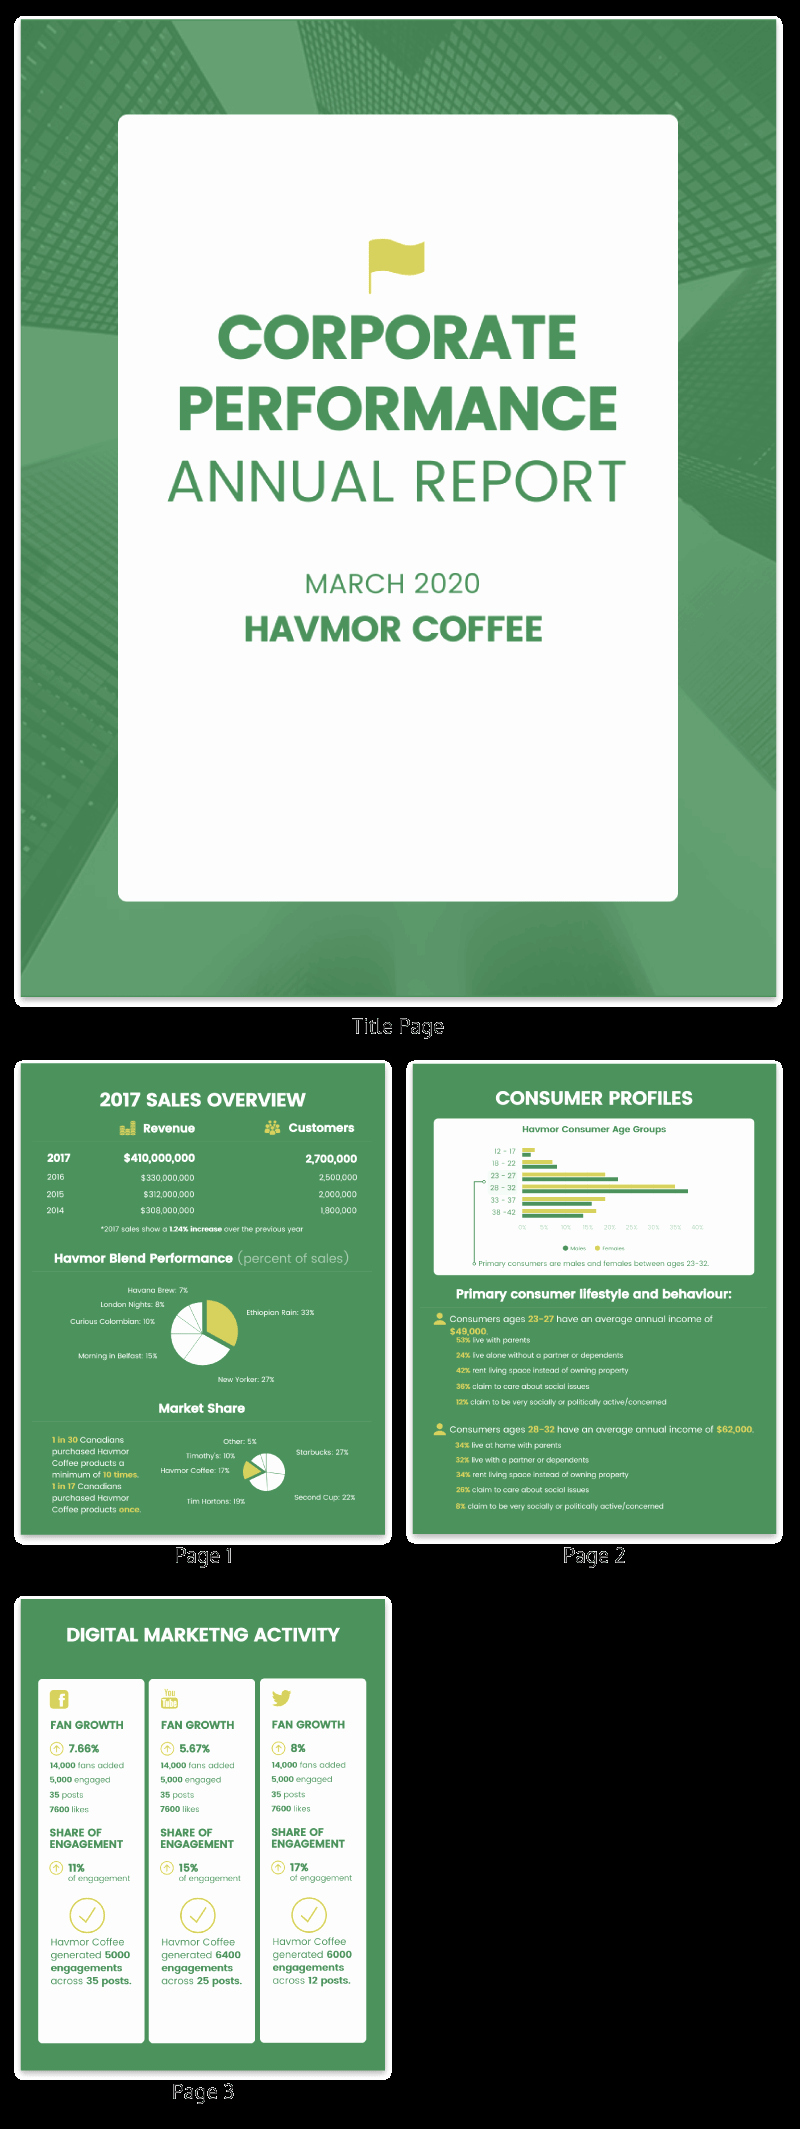 Annual Financial Report Template New 50 Customizable Annual Report Design Templates Examples